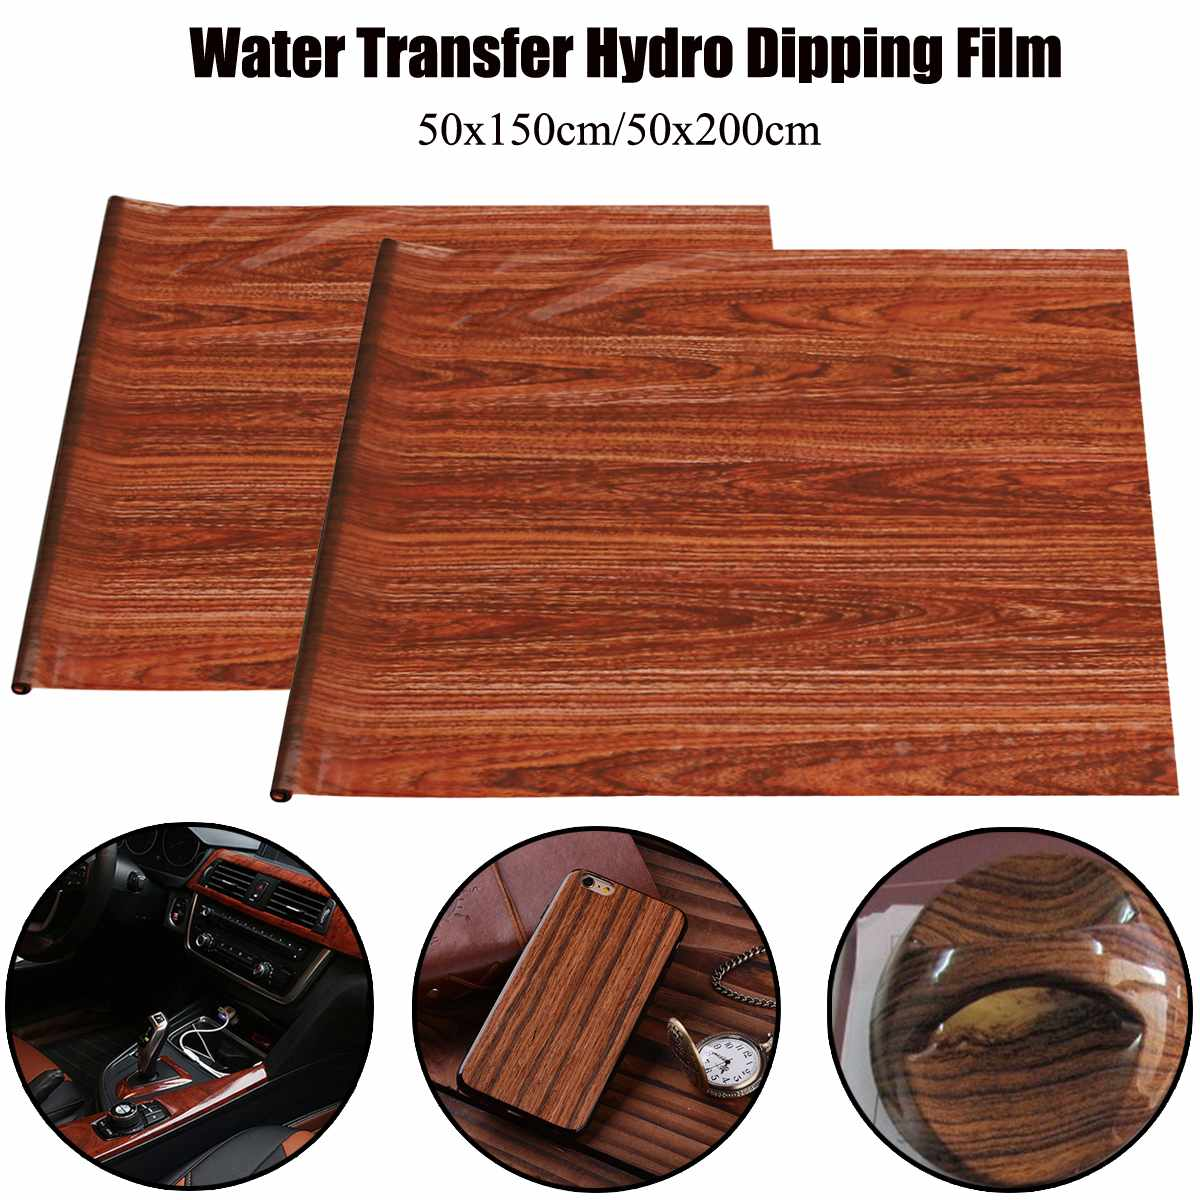 50x150cm/50x200cm Brown Wood Grain PVA Water Transfer Printing Film Hydrographic Dipping 0.5M Width